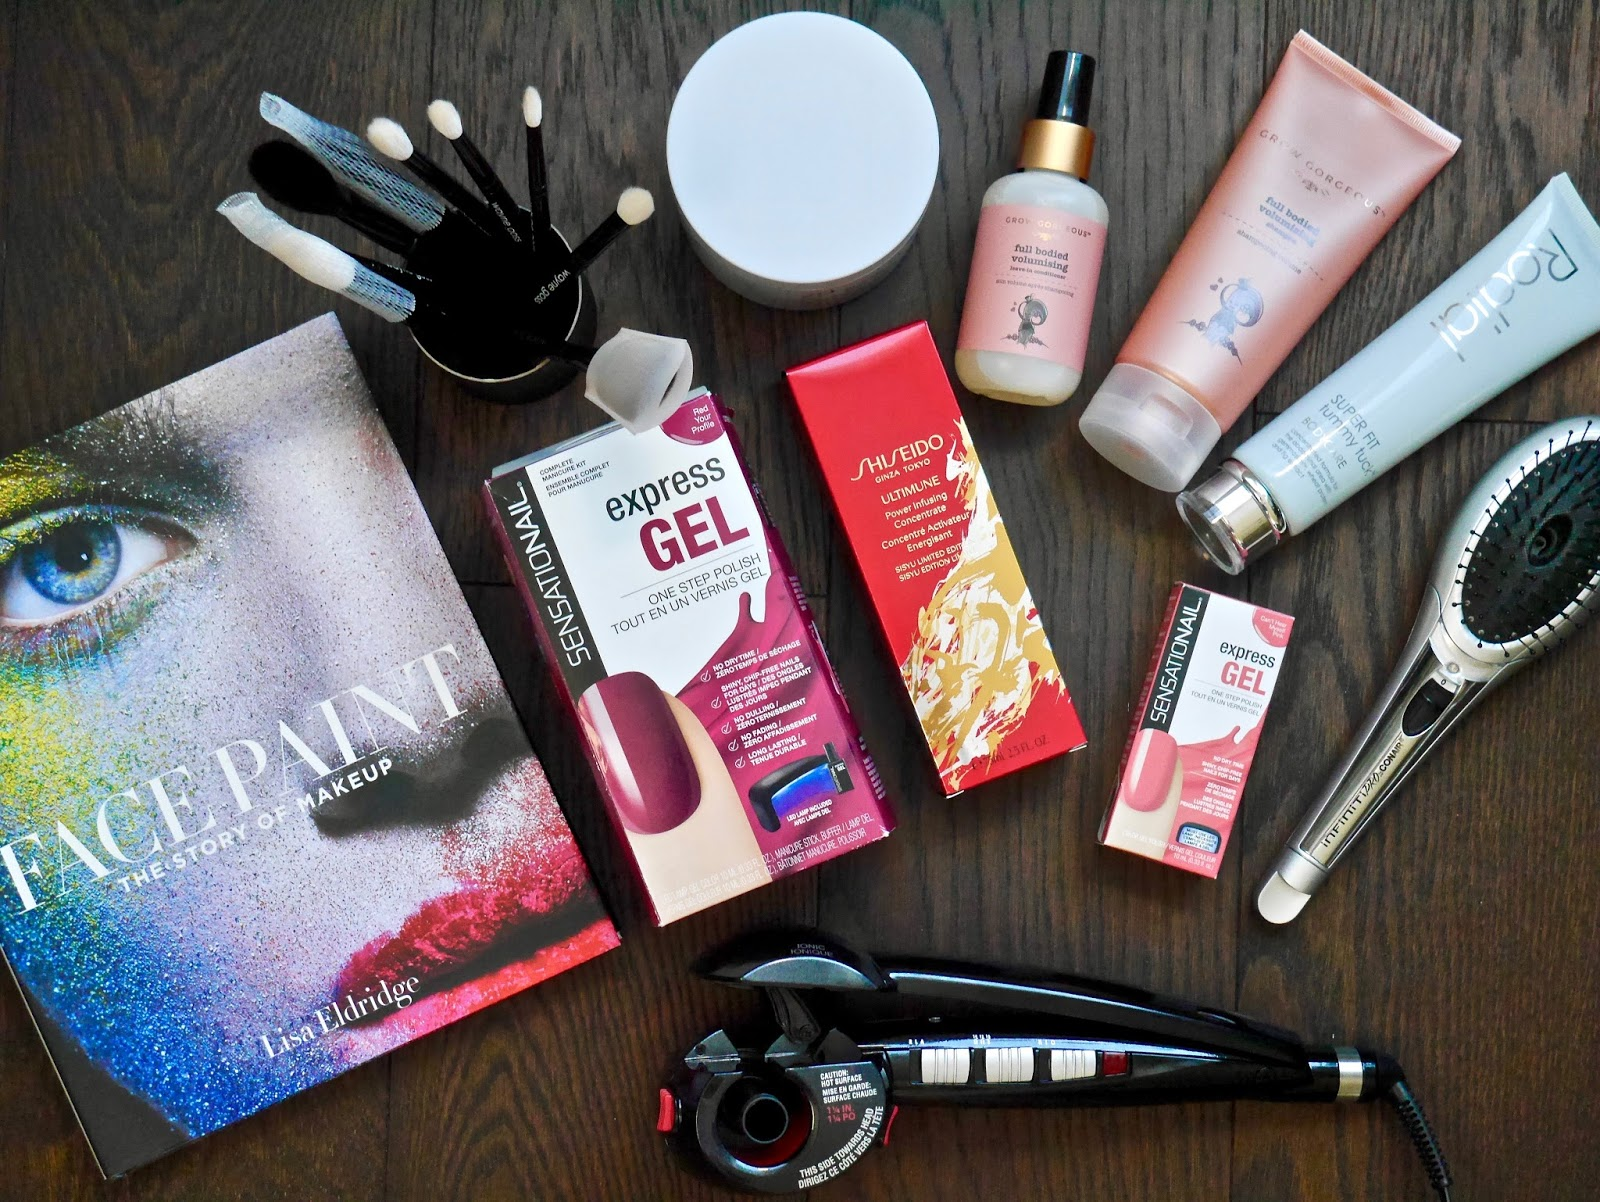 Canadian beauty, beauty, skincare, haircare, body care, makeup tools, books, manicure, pedicure